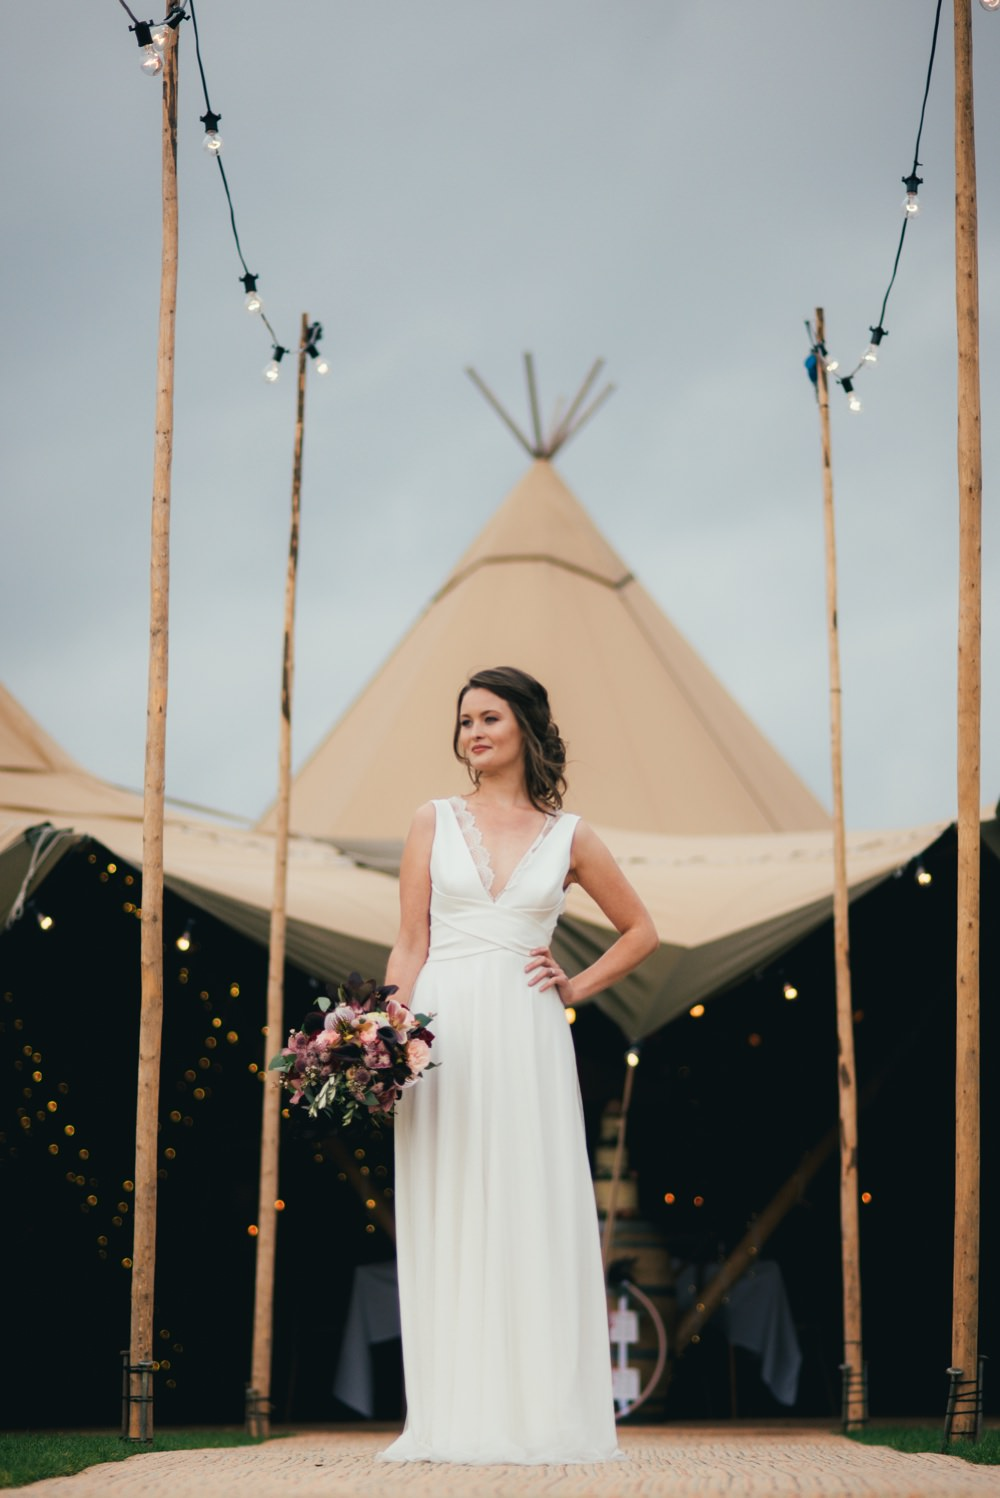 Charlie Brear and Jesus Peiro For a Sophisticated Vineyard Inspired Tipi Shoot by Lucy G Photography - Adored Bride_0035